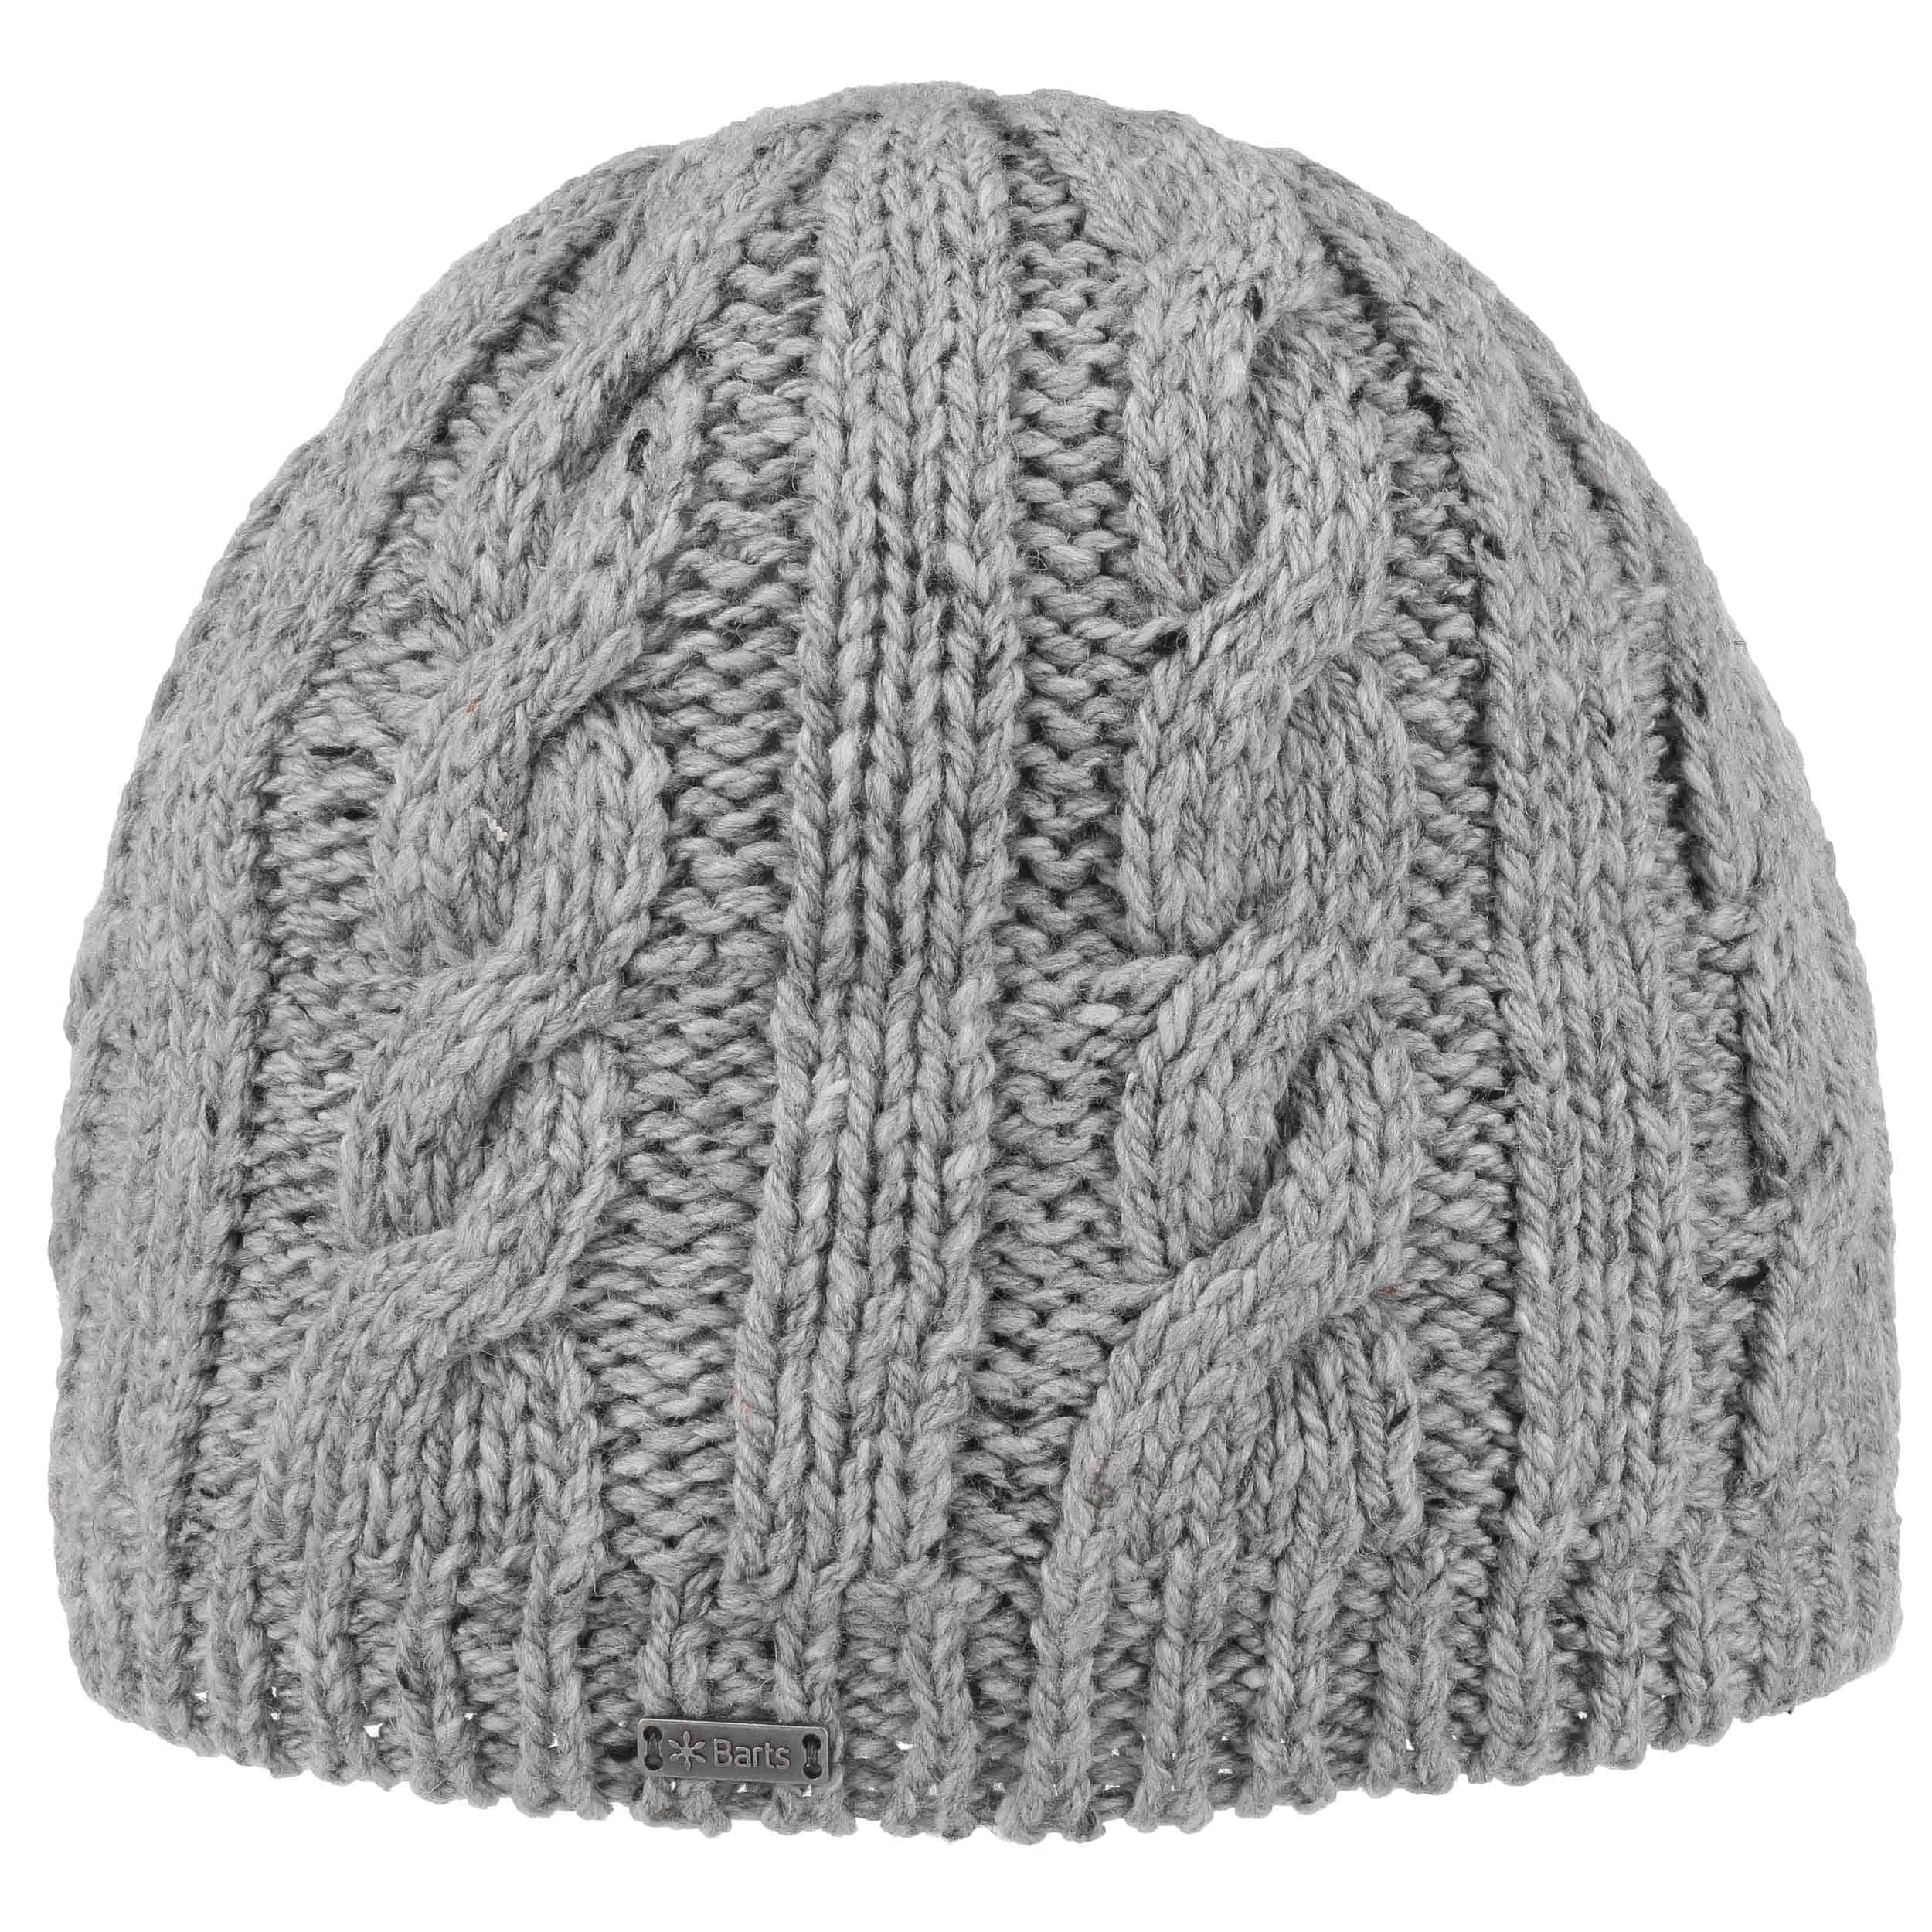 ... Gus Men´s Cable Knit Hat by Barts - grey 4 ... c8286e23d99